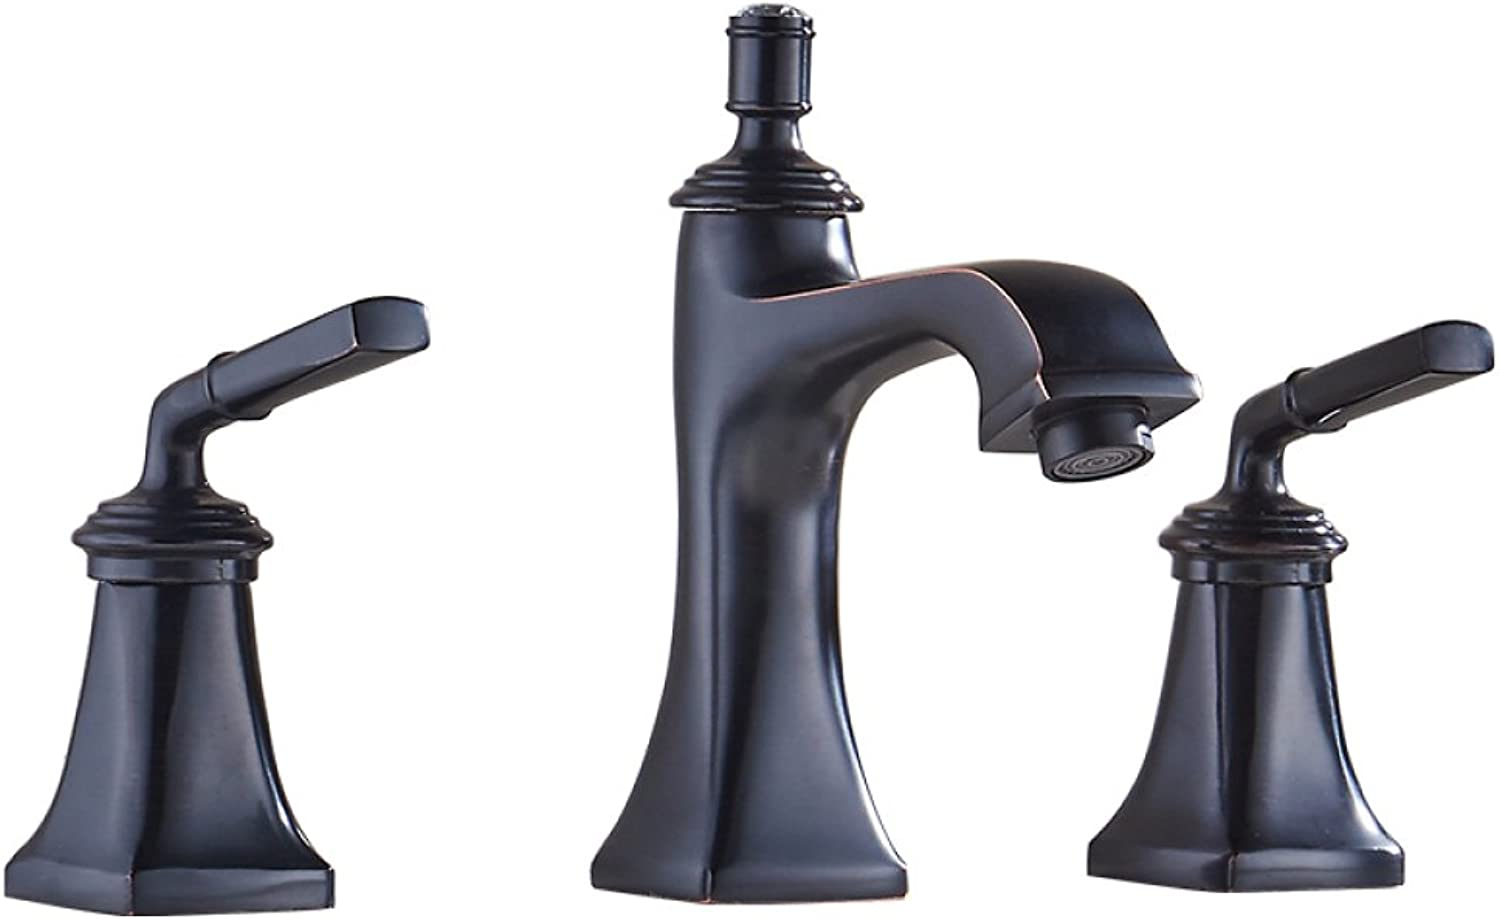 The Bathtub Faucet, The Shower Bath Concealed Triple Switch The Hot and Cold Water Faucet Mixed Mixing Valve,Black